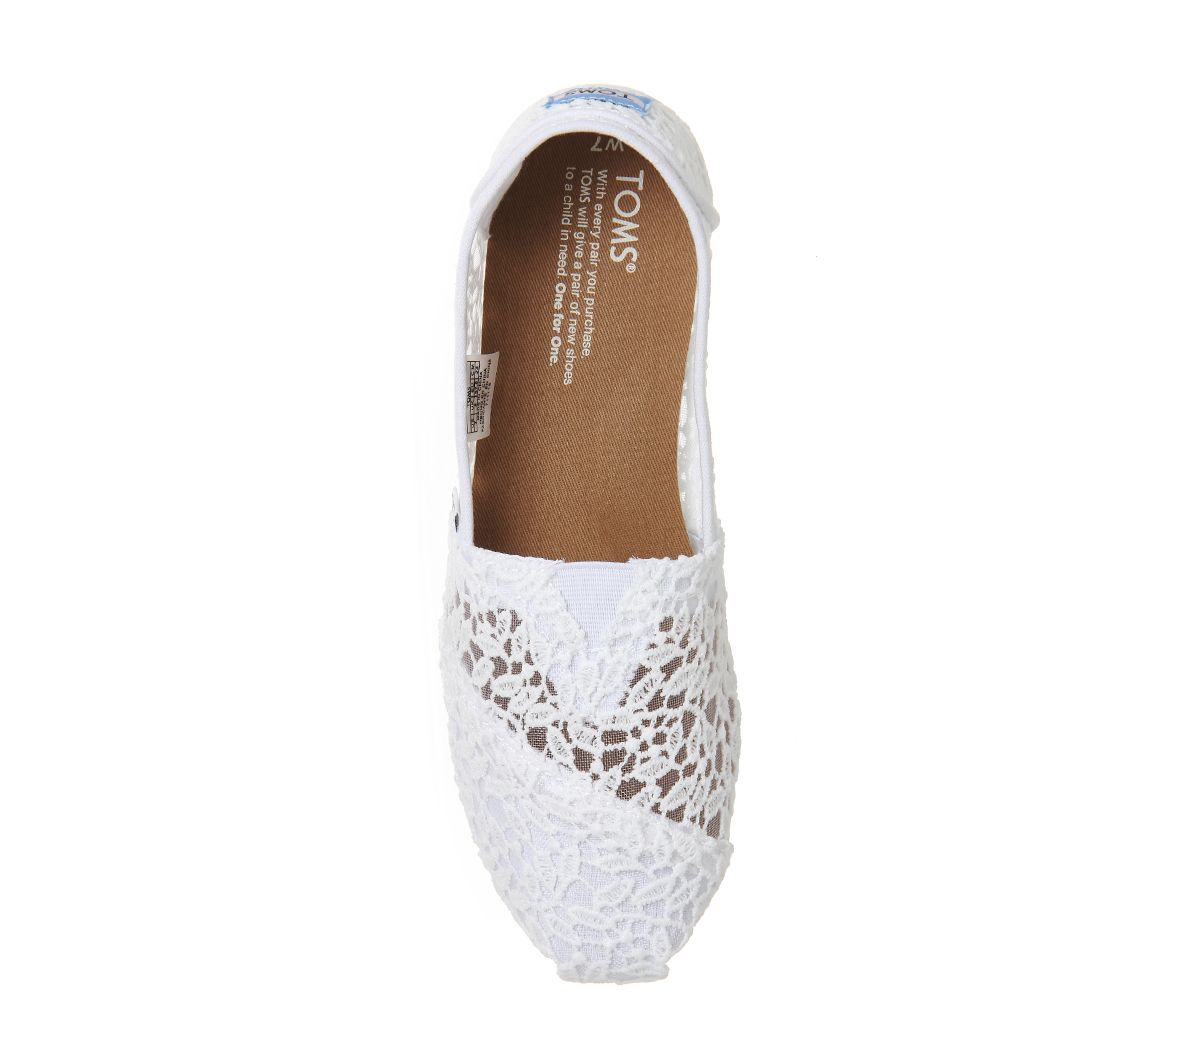 93eadcfc Womens Toms Seasonal Classic Slip On White Lace Leaves Flats | eBay